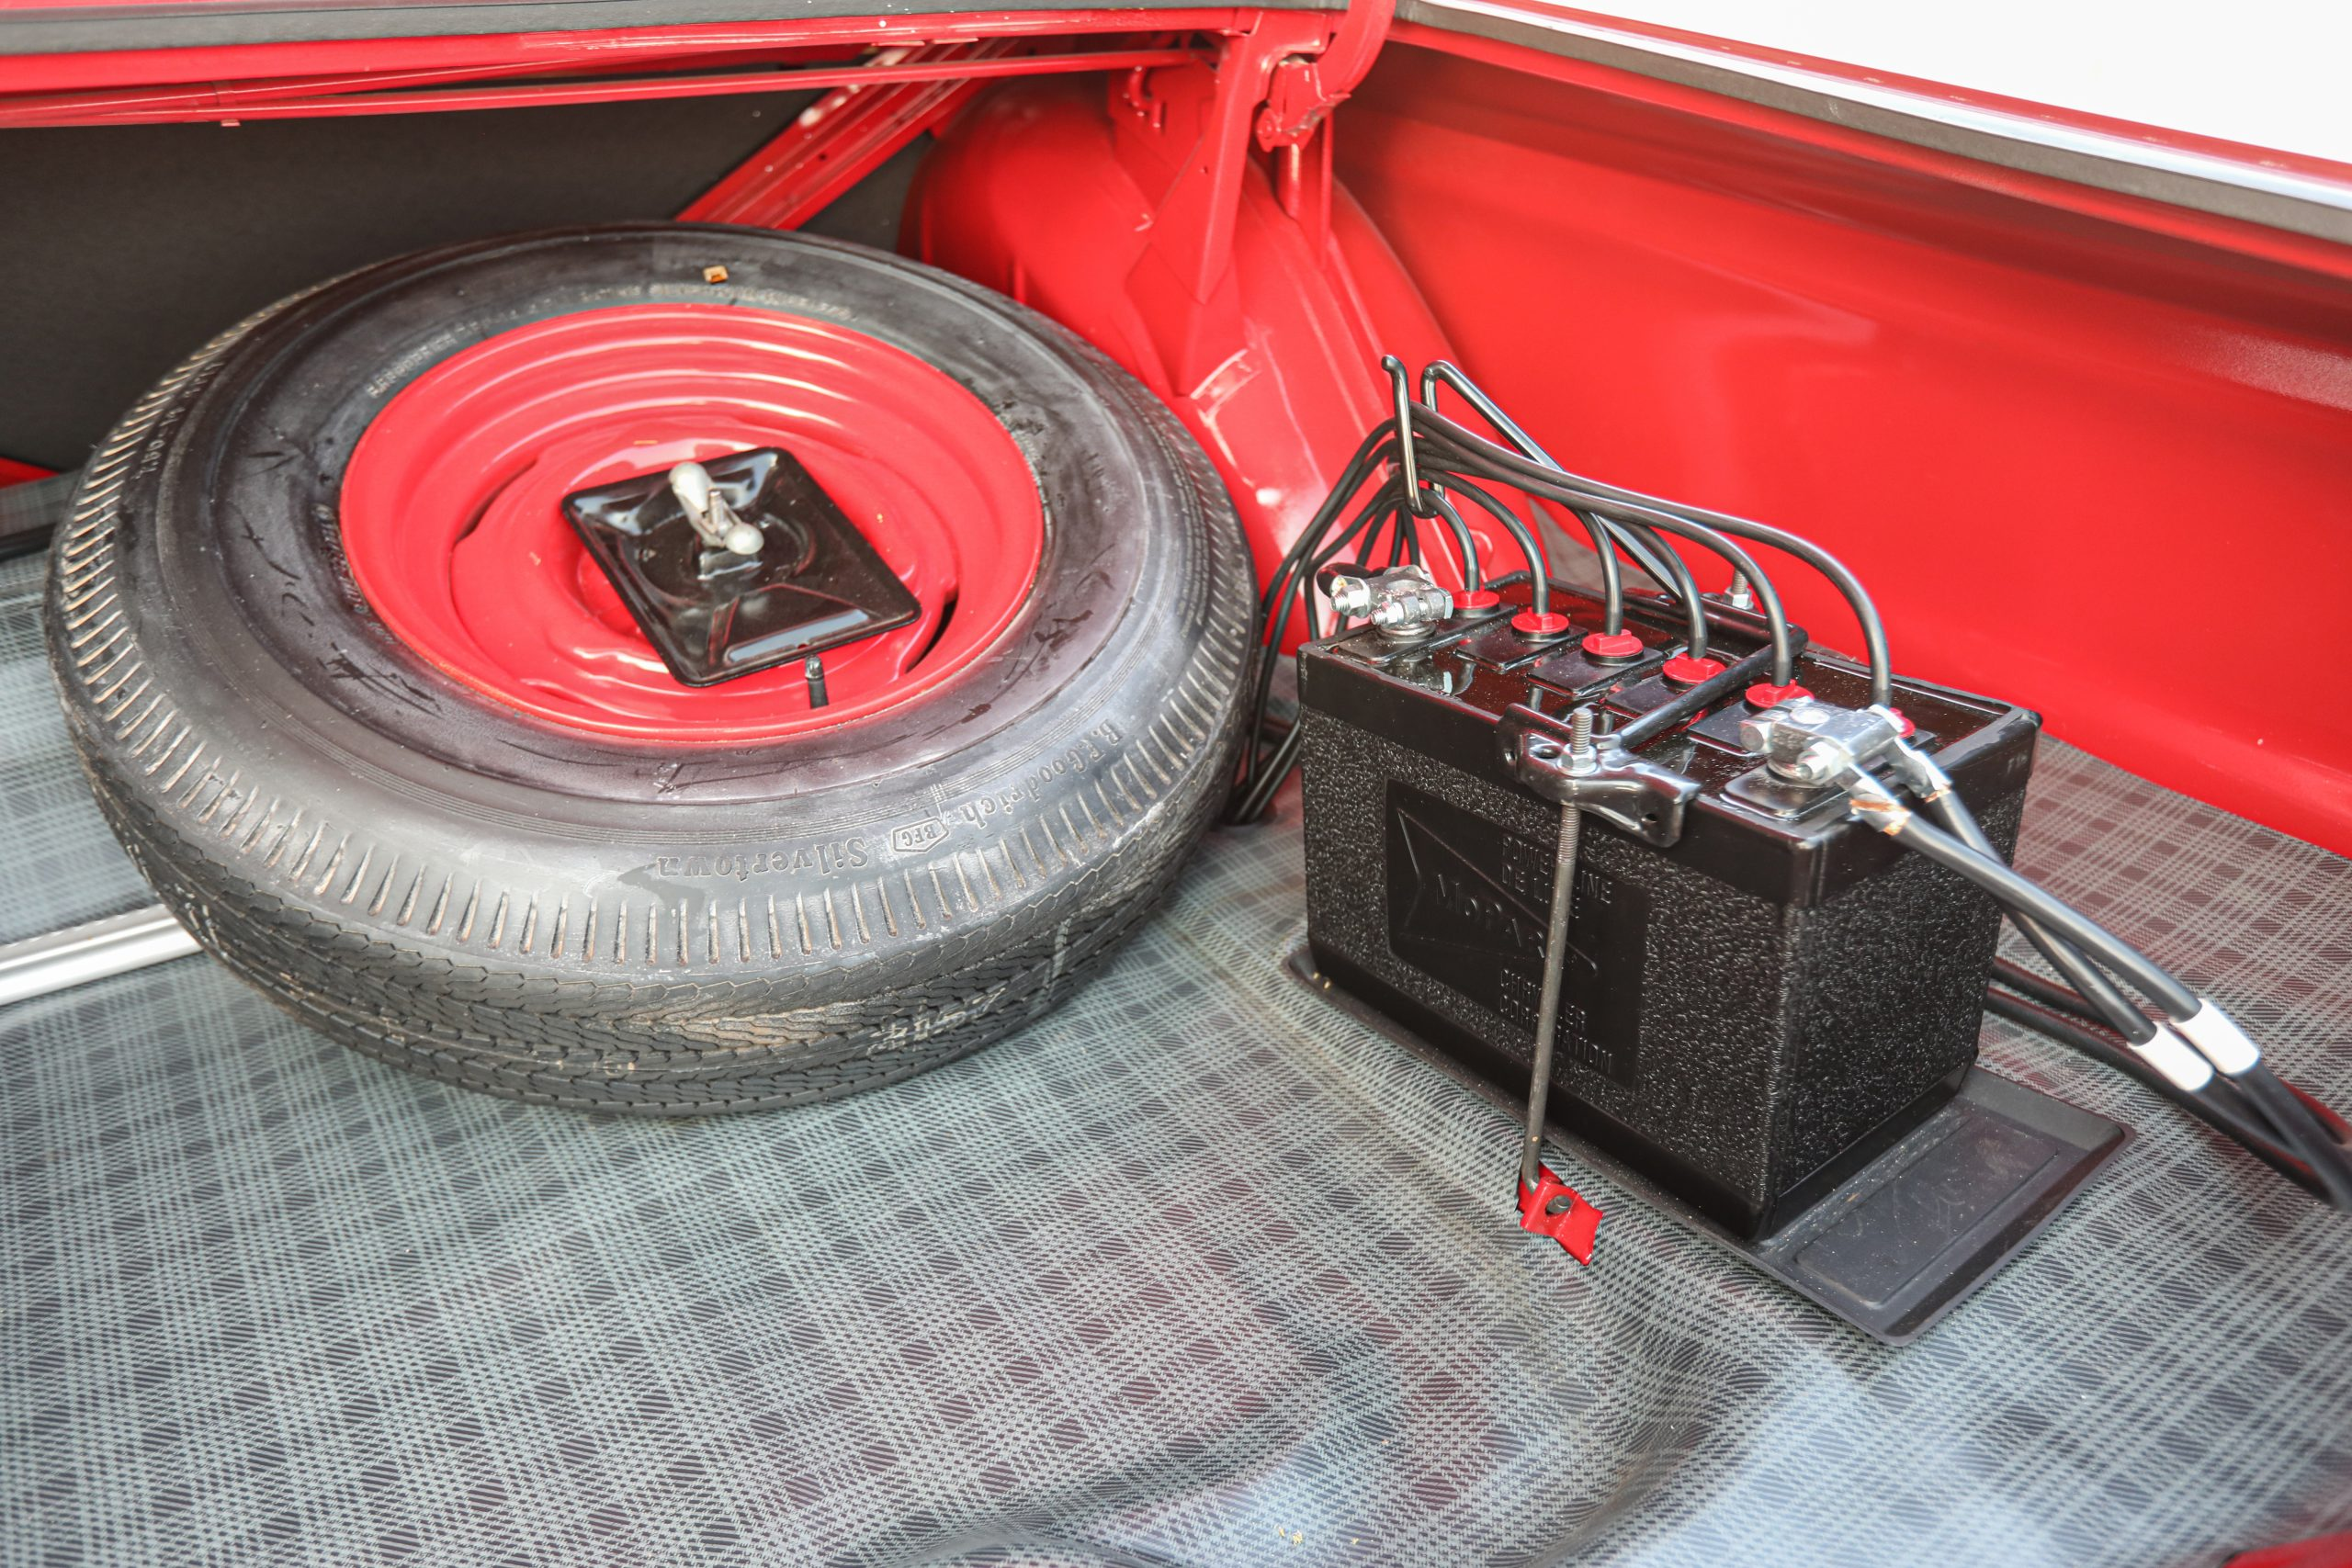 1963 Plymouth 426 Max Wedge lightweight trunk battery spare